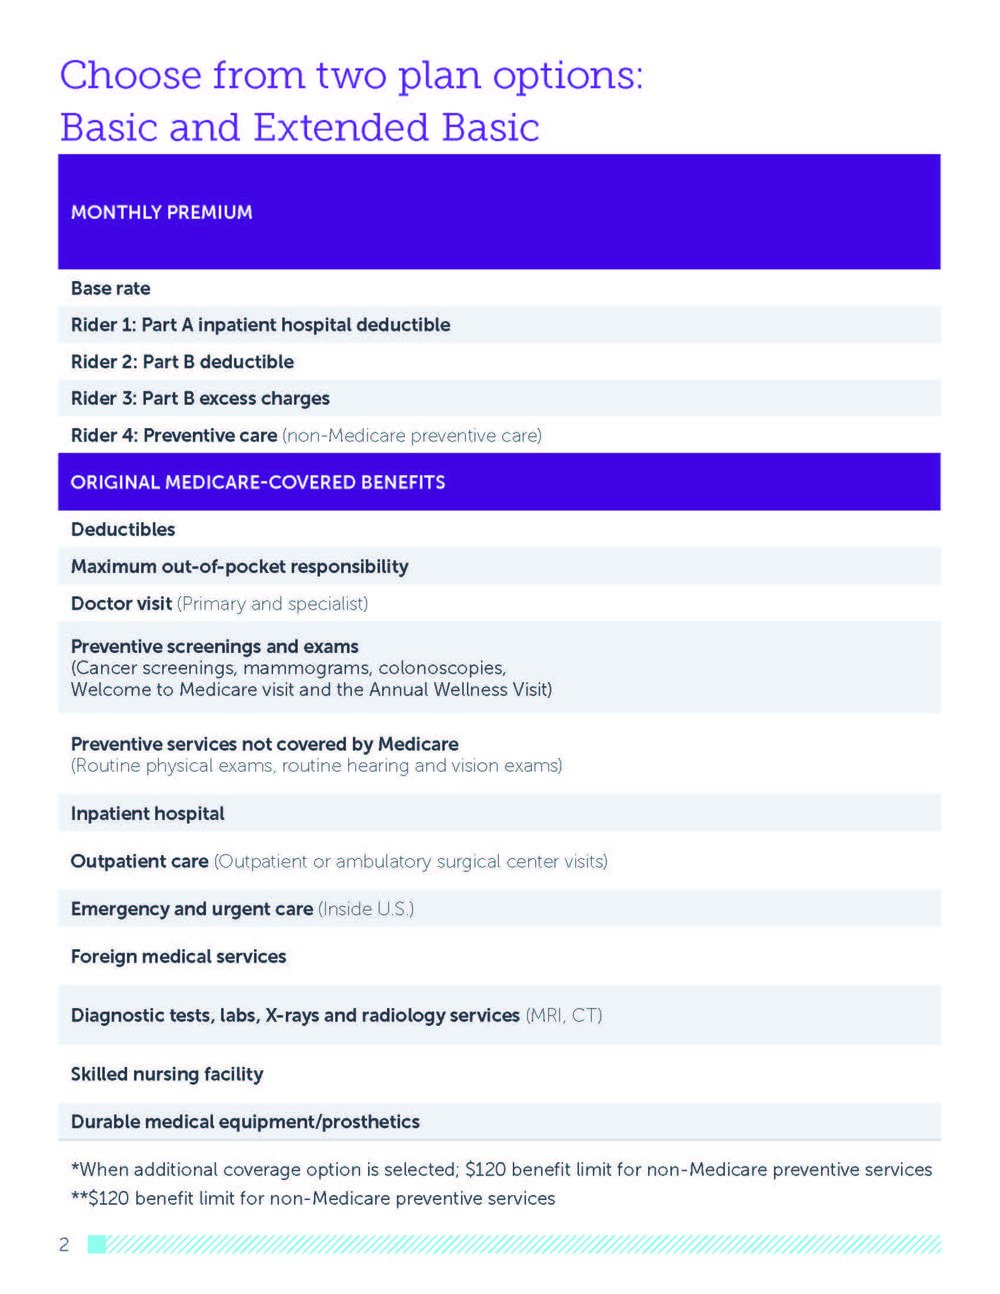 2019 HealthPartners® Medicare Supplement Plan Comparison Guide_Page_04.jpg